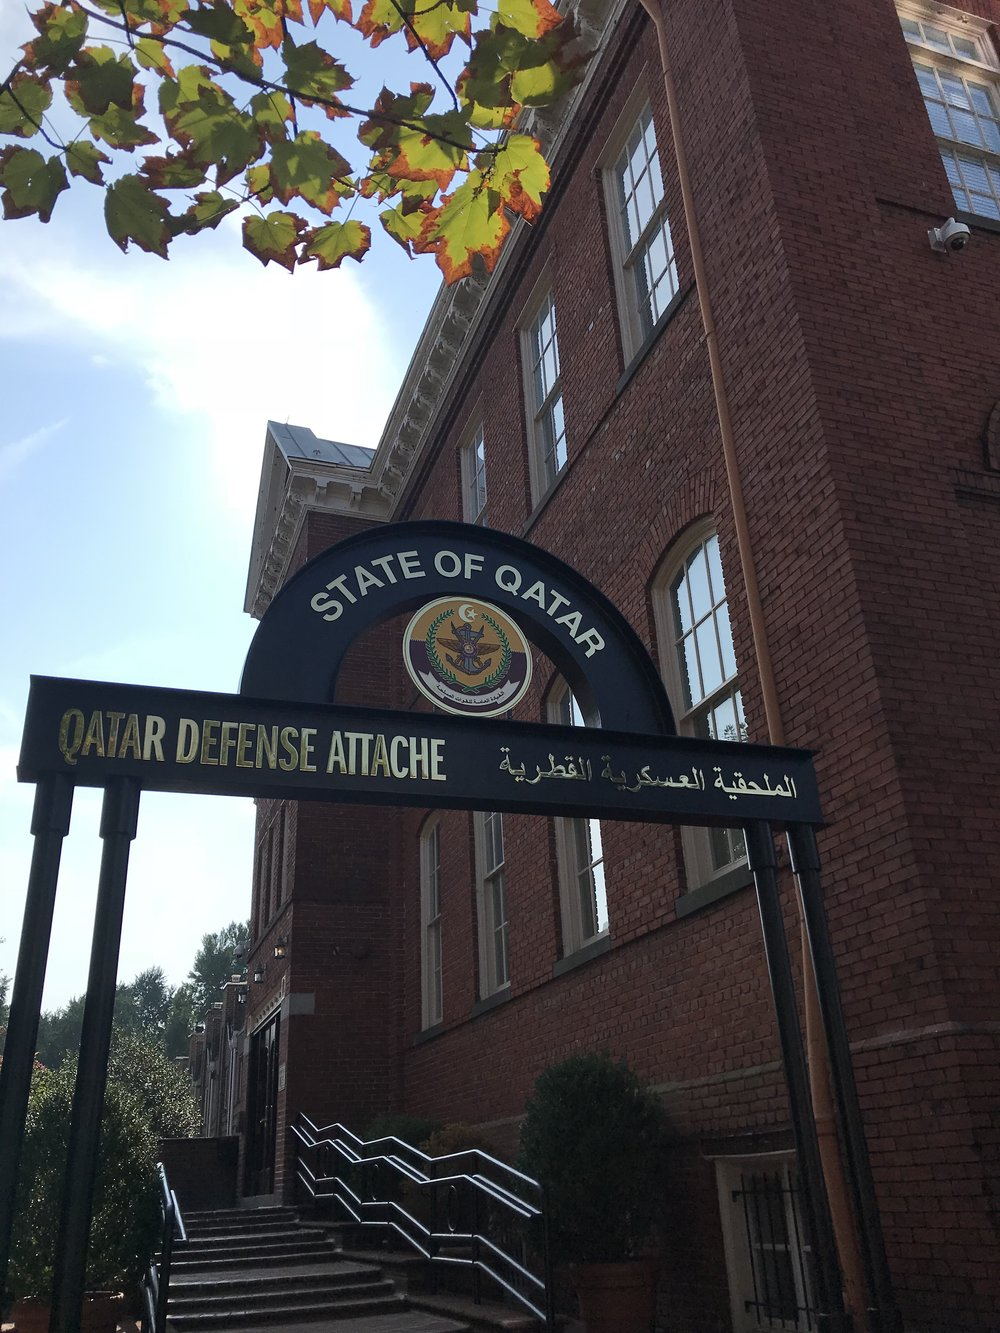 The Embassy of the Qatar, Defense Attache Office.